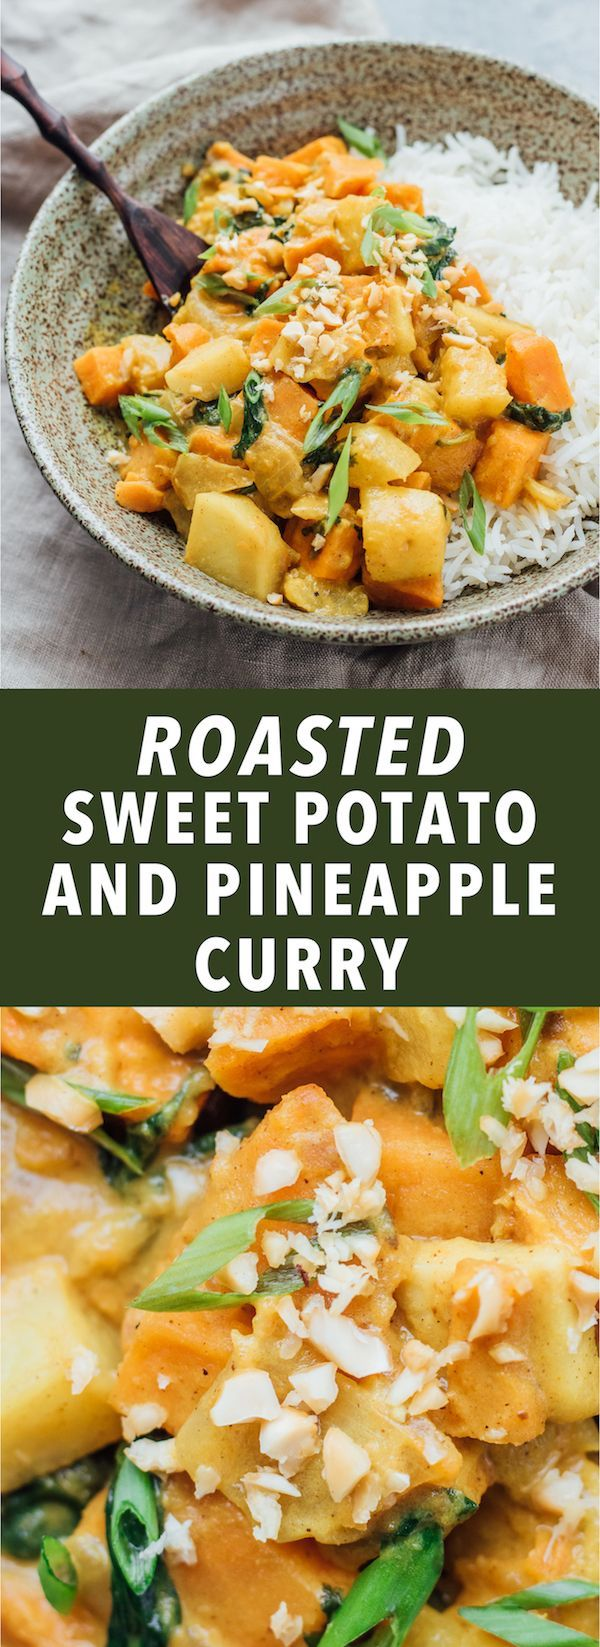 This roasted sweet potato and pineapple curry is the perfect vegan comfort food. It's loaded with warming spices and easy to make!